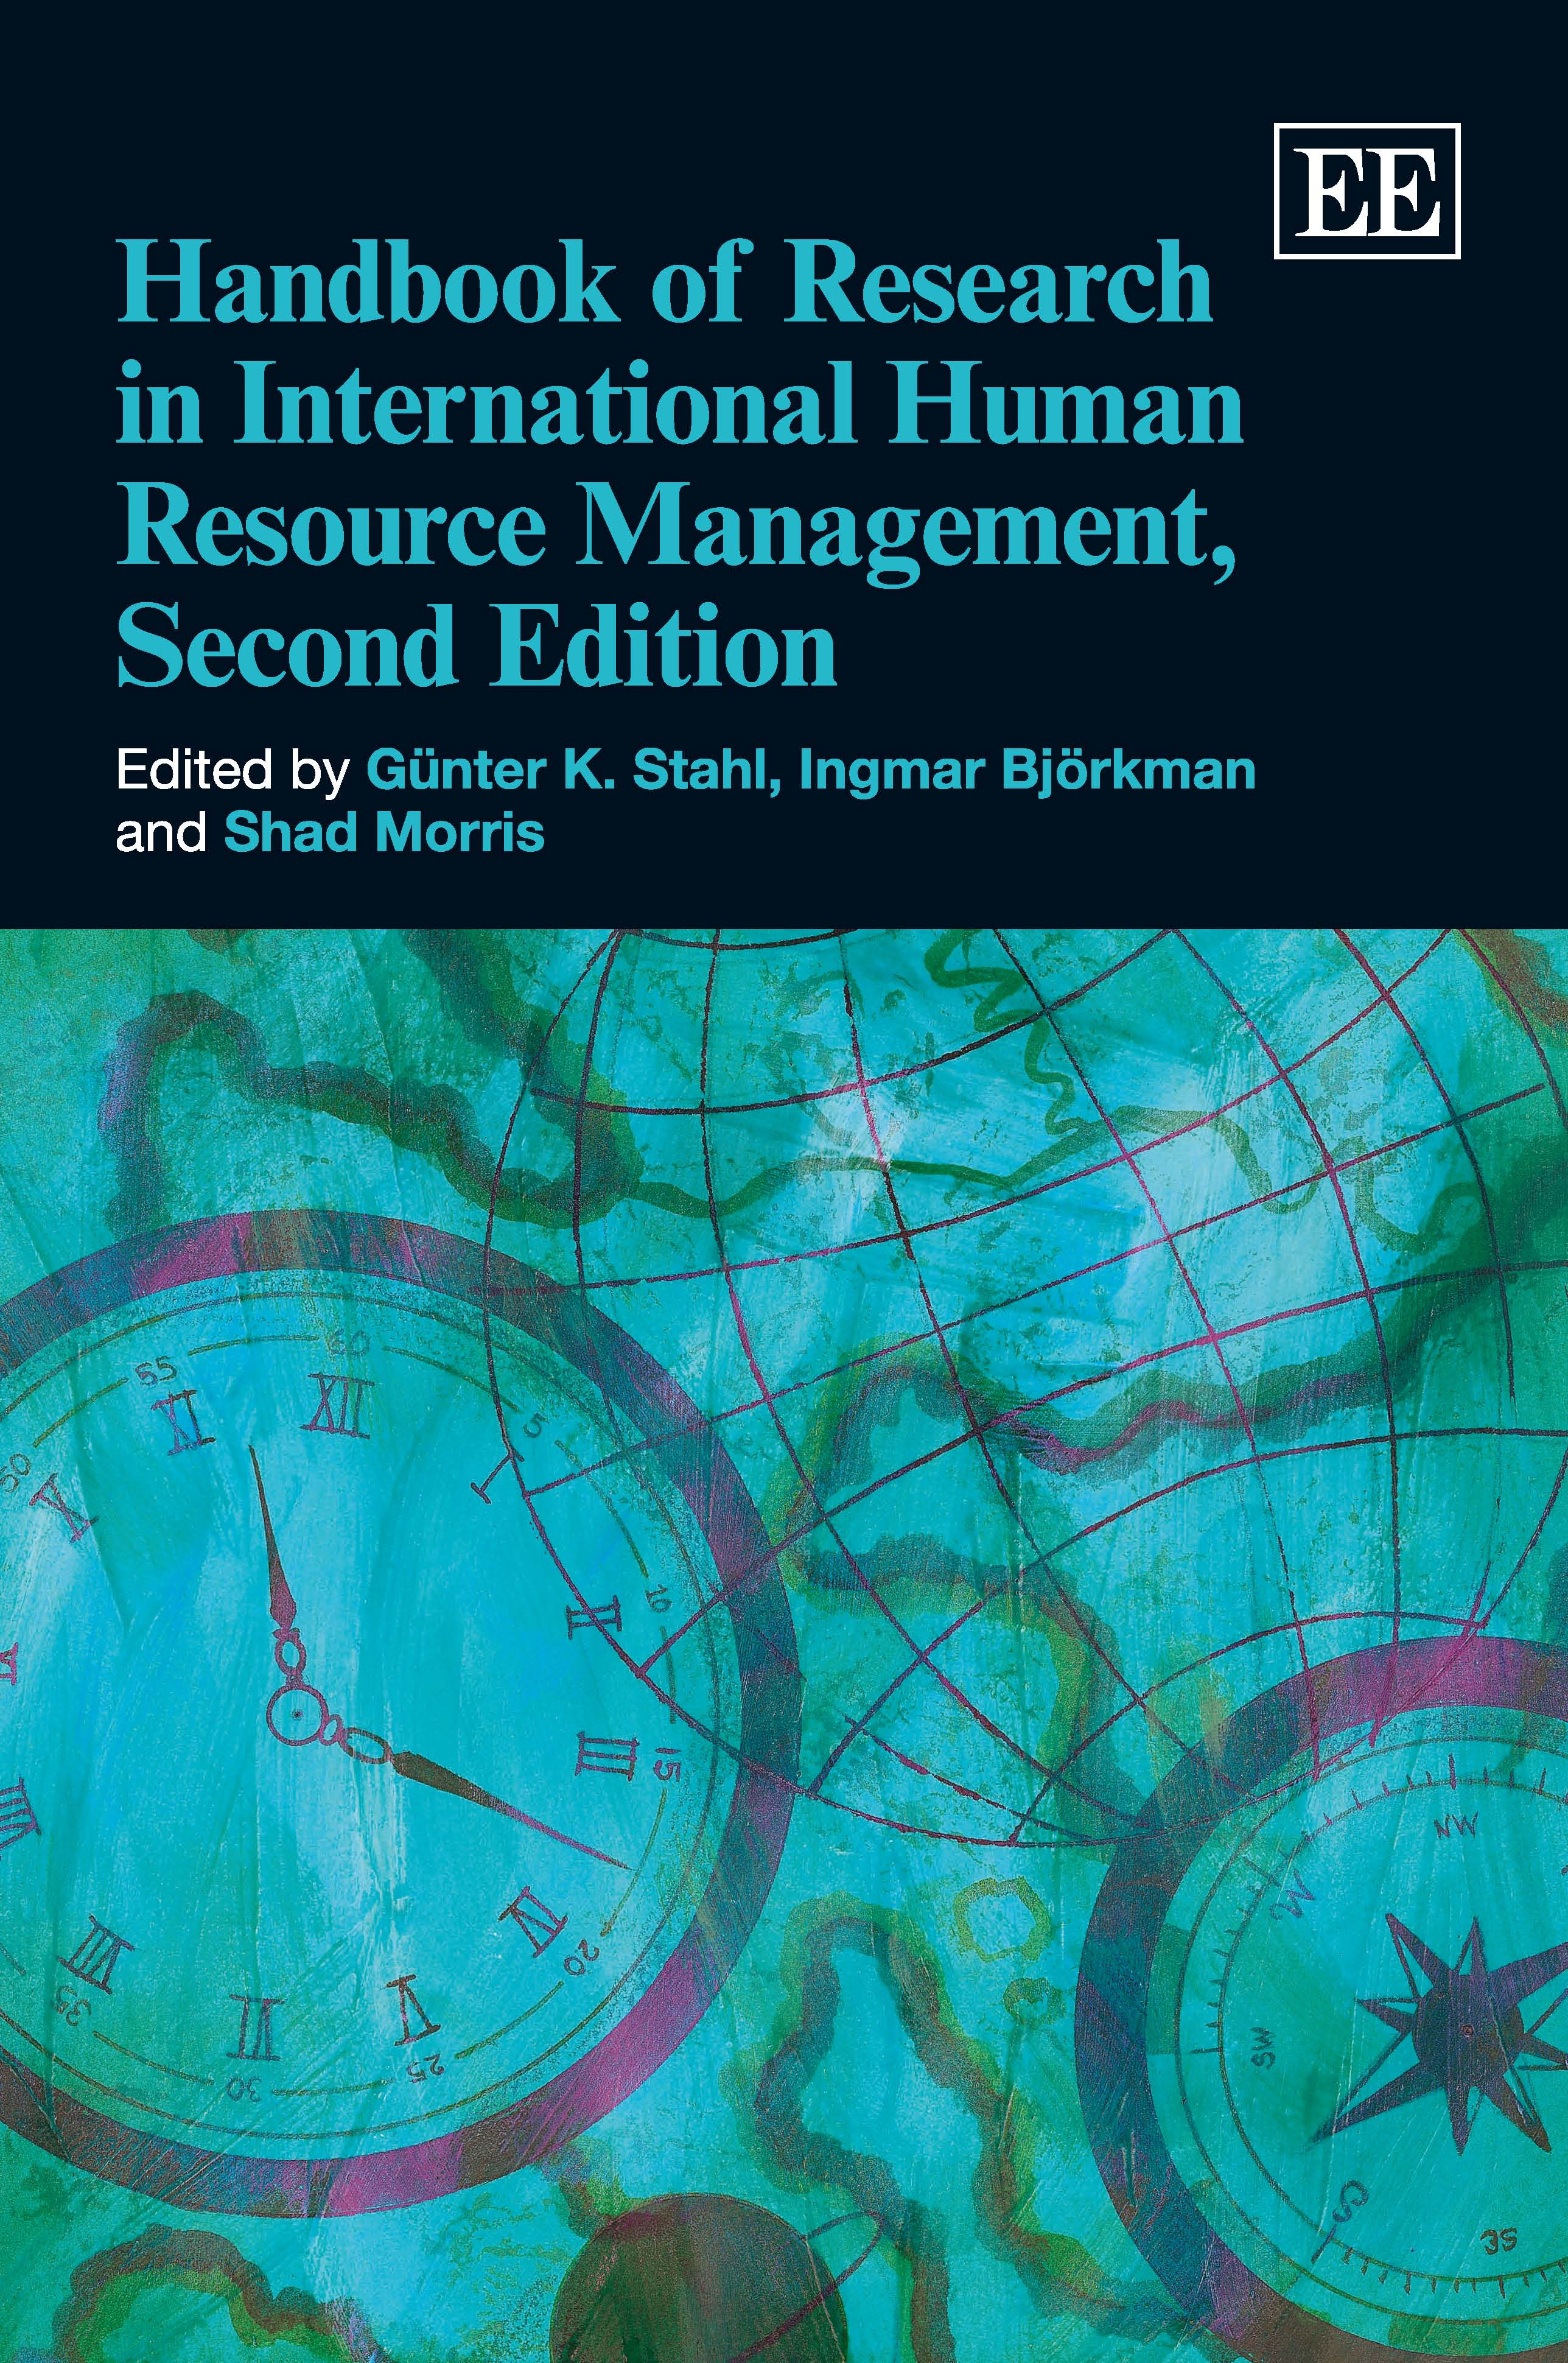 Handbook of Research in International Human Resource Management, Second Edition